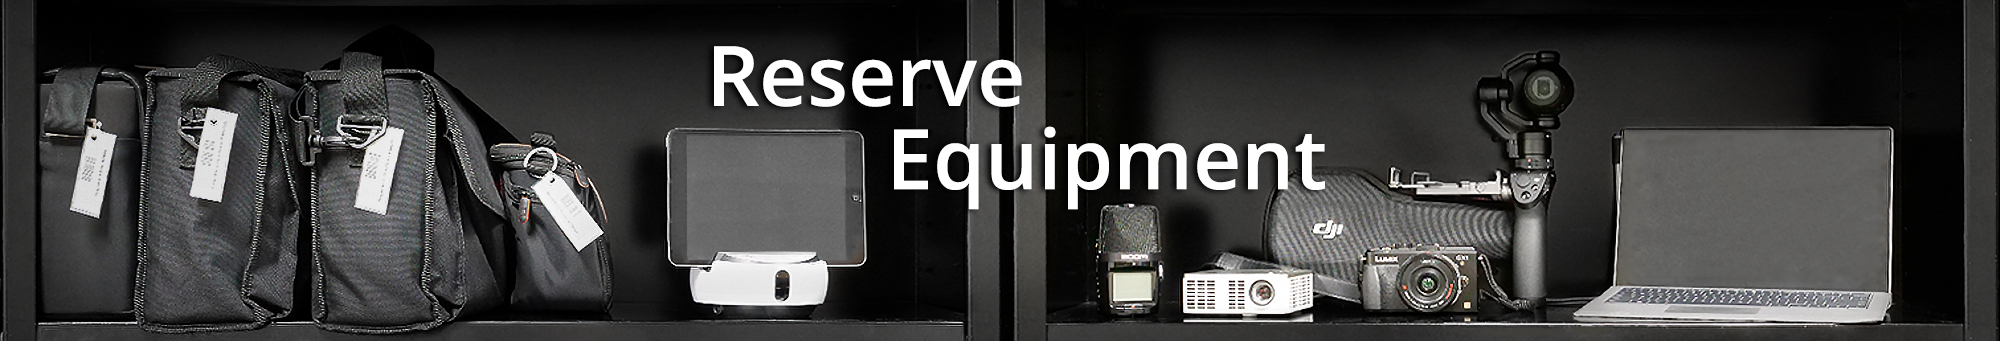 equipment checkout banner with equipment on shelves